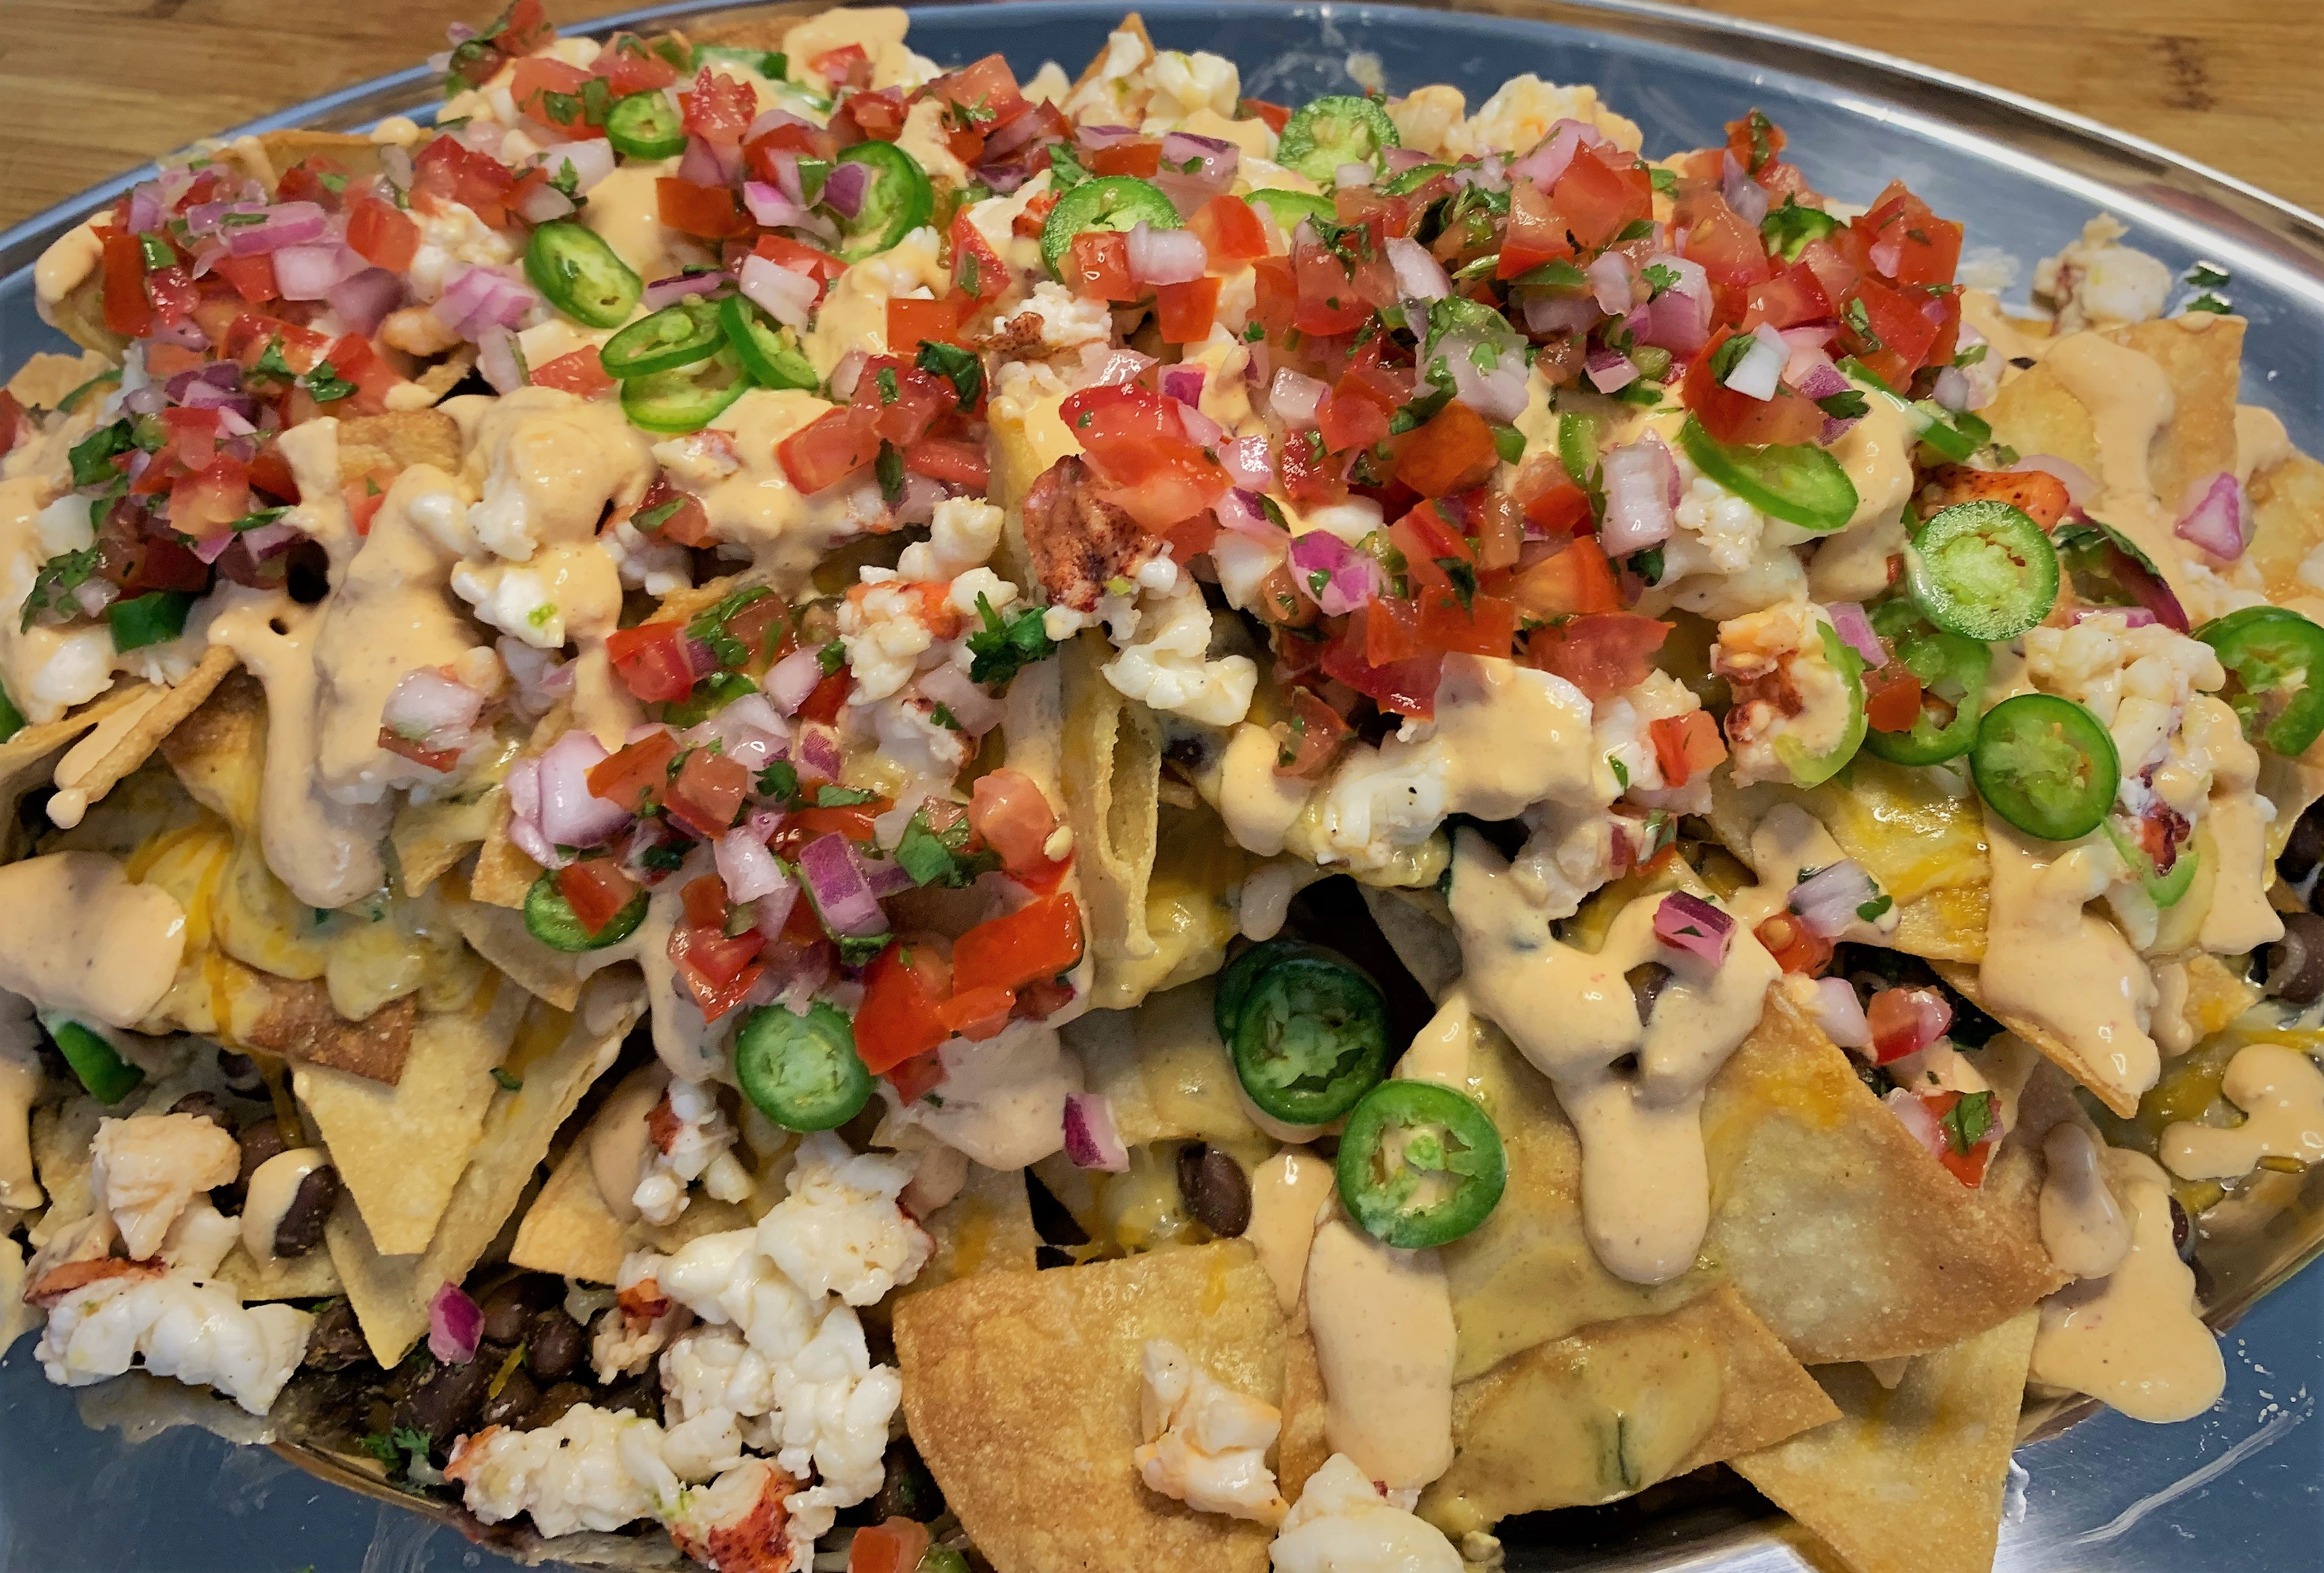 Our completed Lobster Nachos - Lamplight Lounge - Disney California Adventure Park